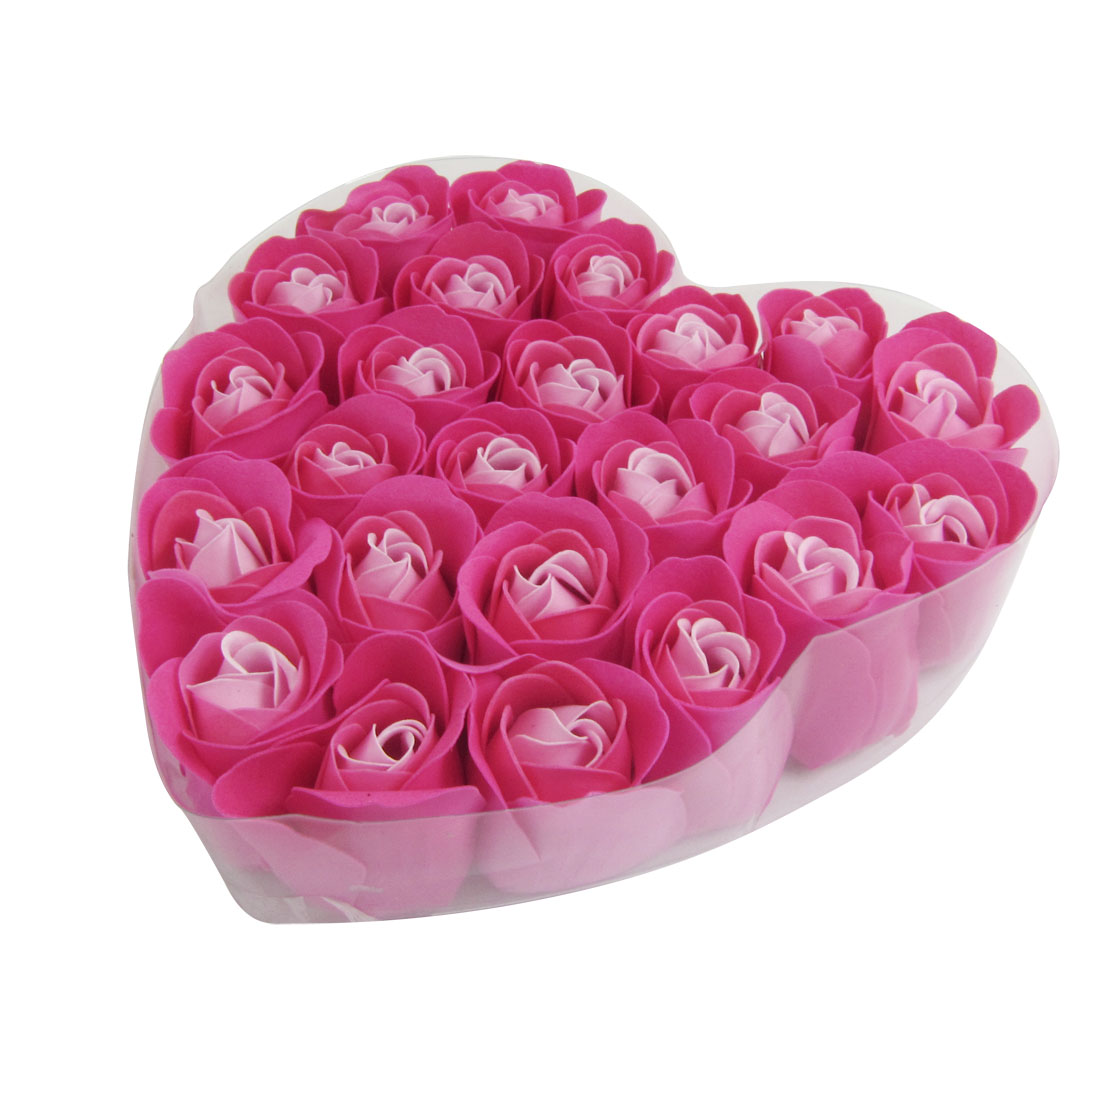 24 Pcs Fuchsia Scented Bath Soap Rose Petal in Heart Box